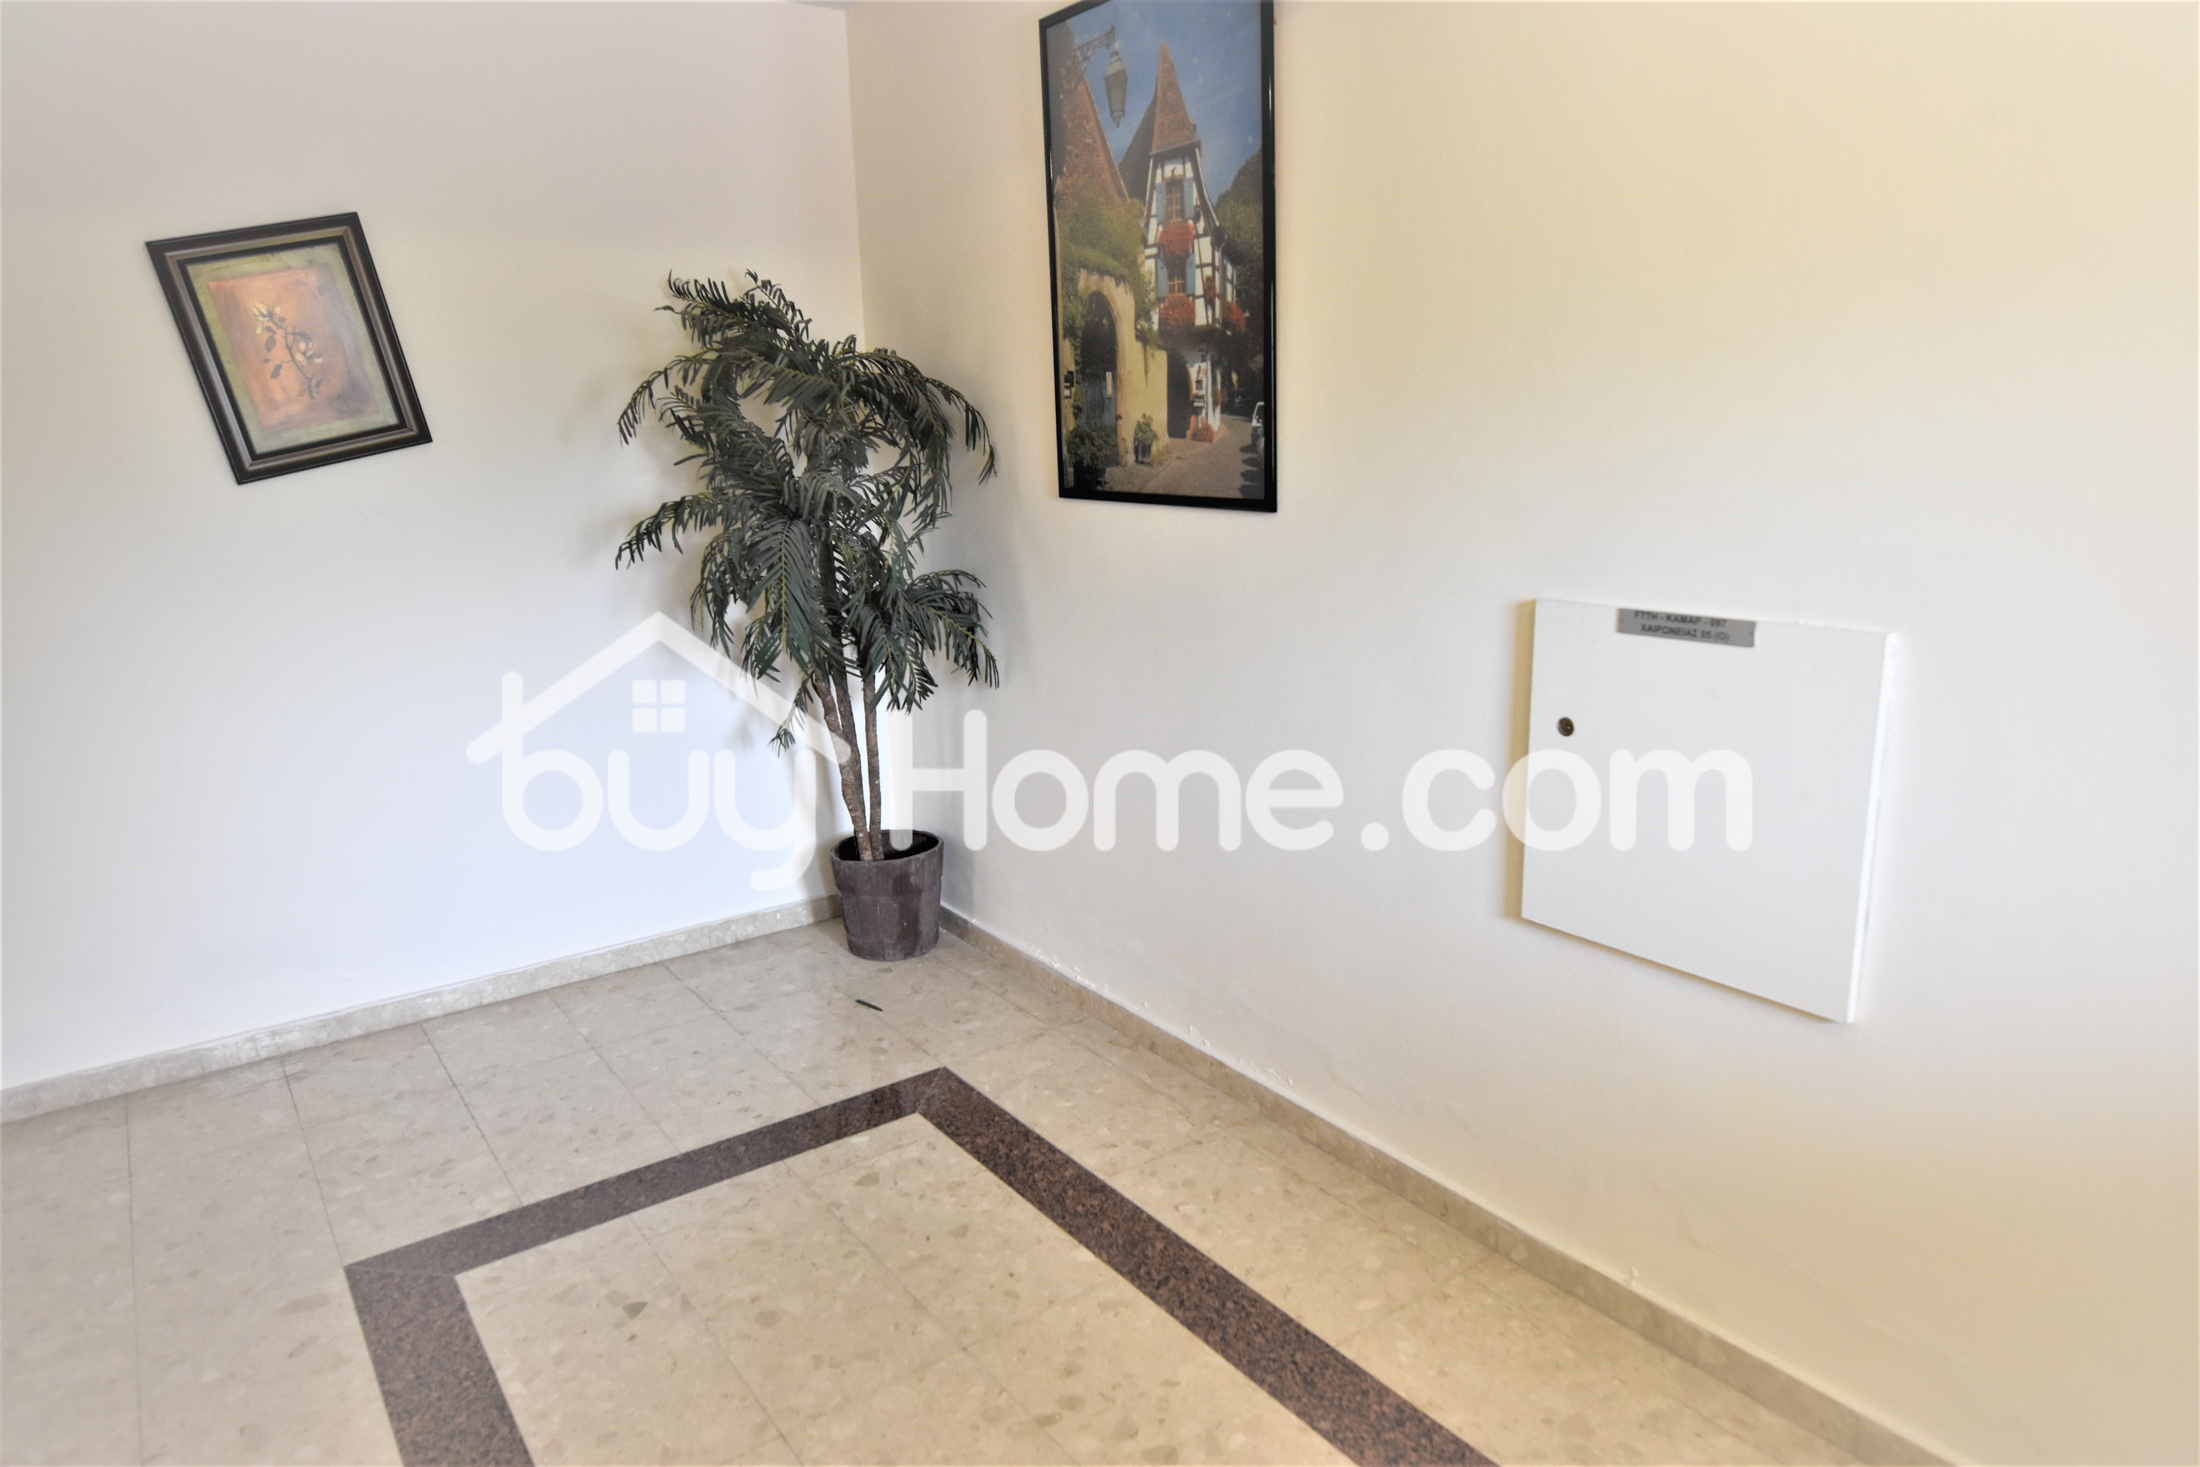 1 Bedroom Apartment | BuyHome